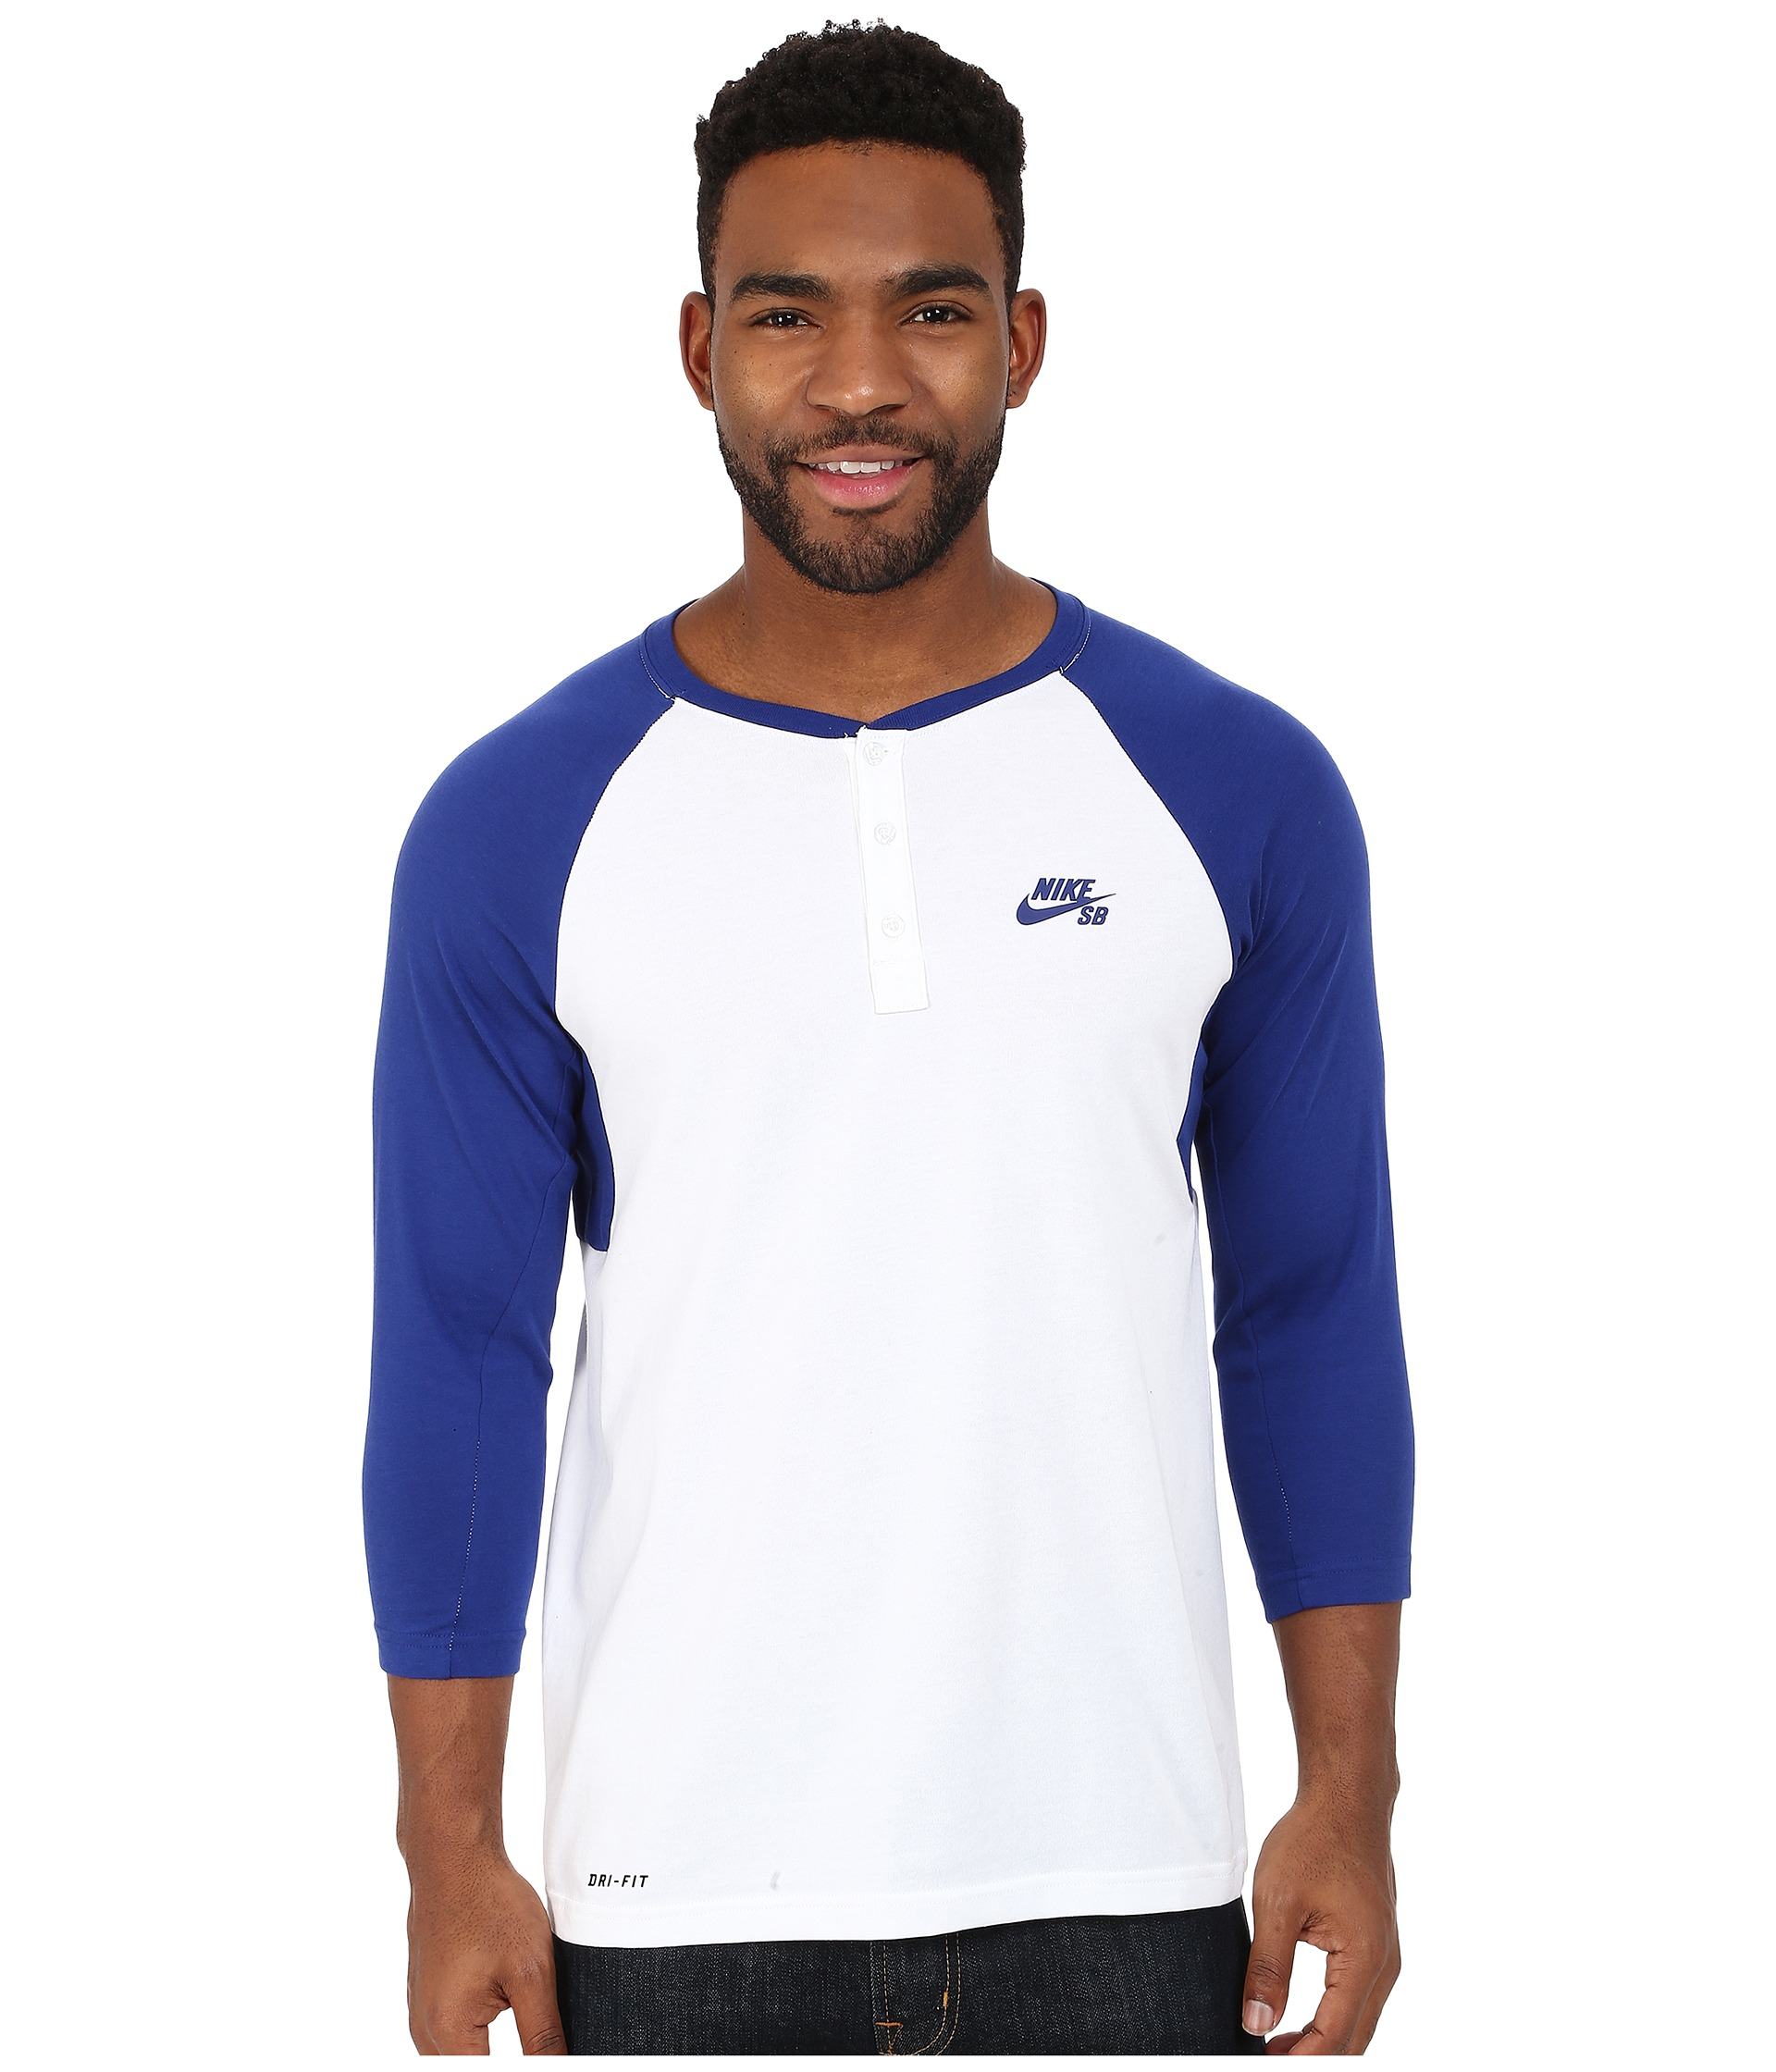 e2318a9b Nike Sb Dri-fit 3/4 Sleeve Henley Top in Blue for Men - Lyst